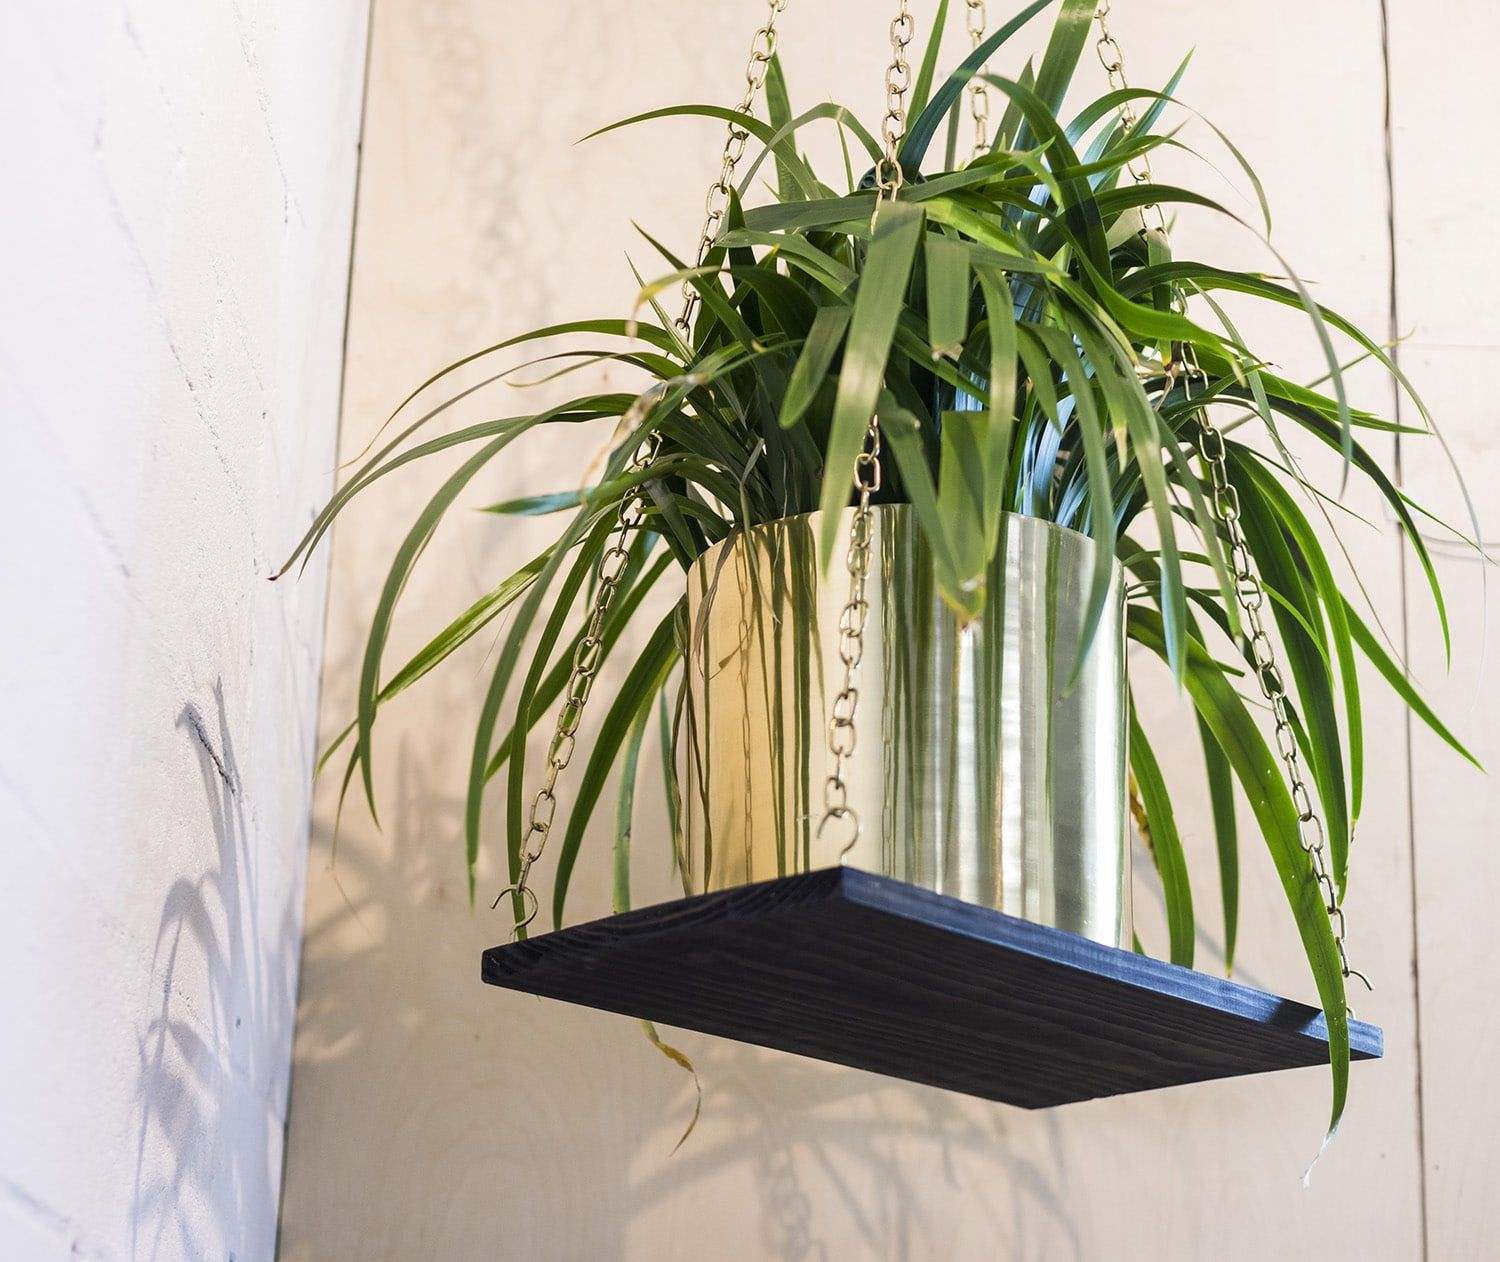 5 reasons to add greenery to your workspace